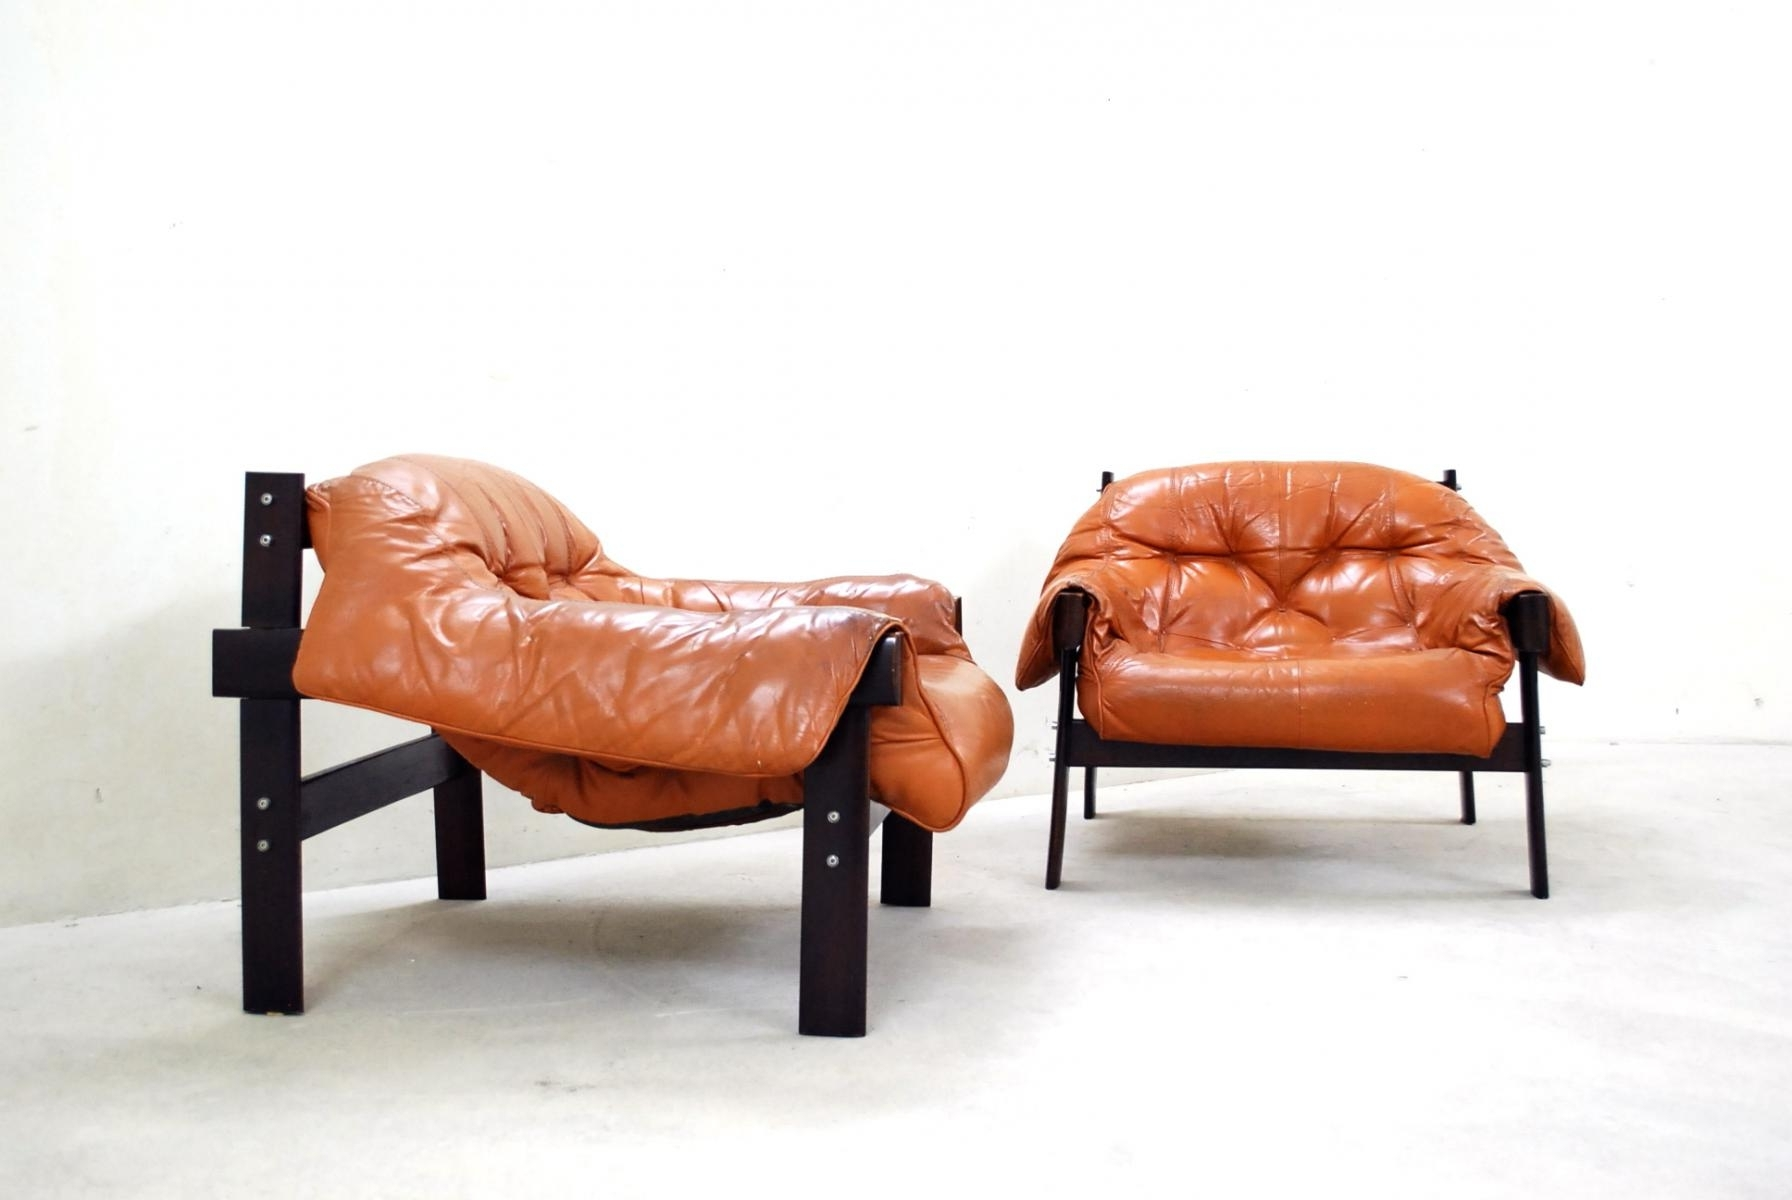 Best And Newest Brazilian Leather Lounge Chairpercival Lafer For Sale At Pamono Regarding Lounge Sofas And Chairs (View 1 of 15)